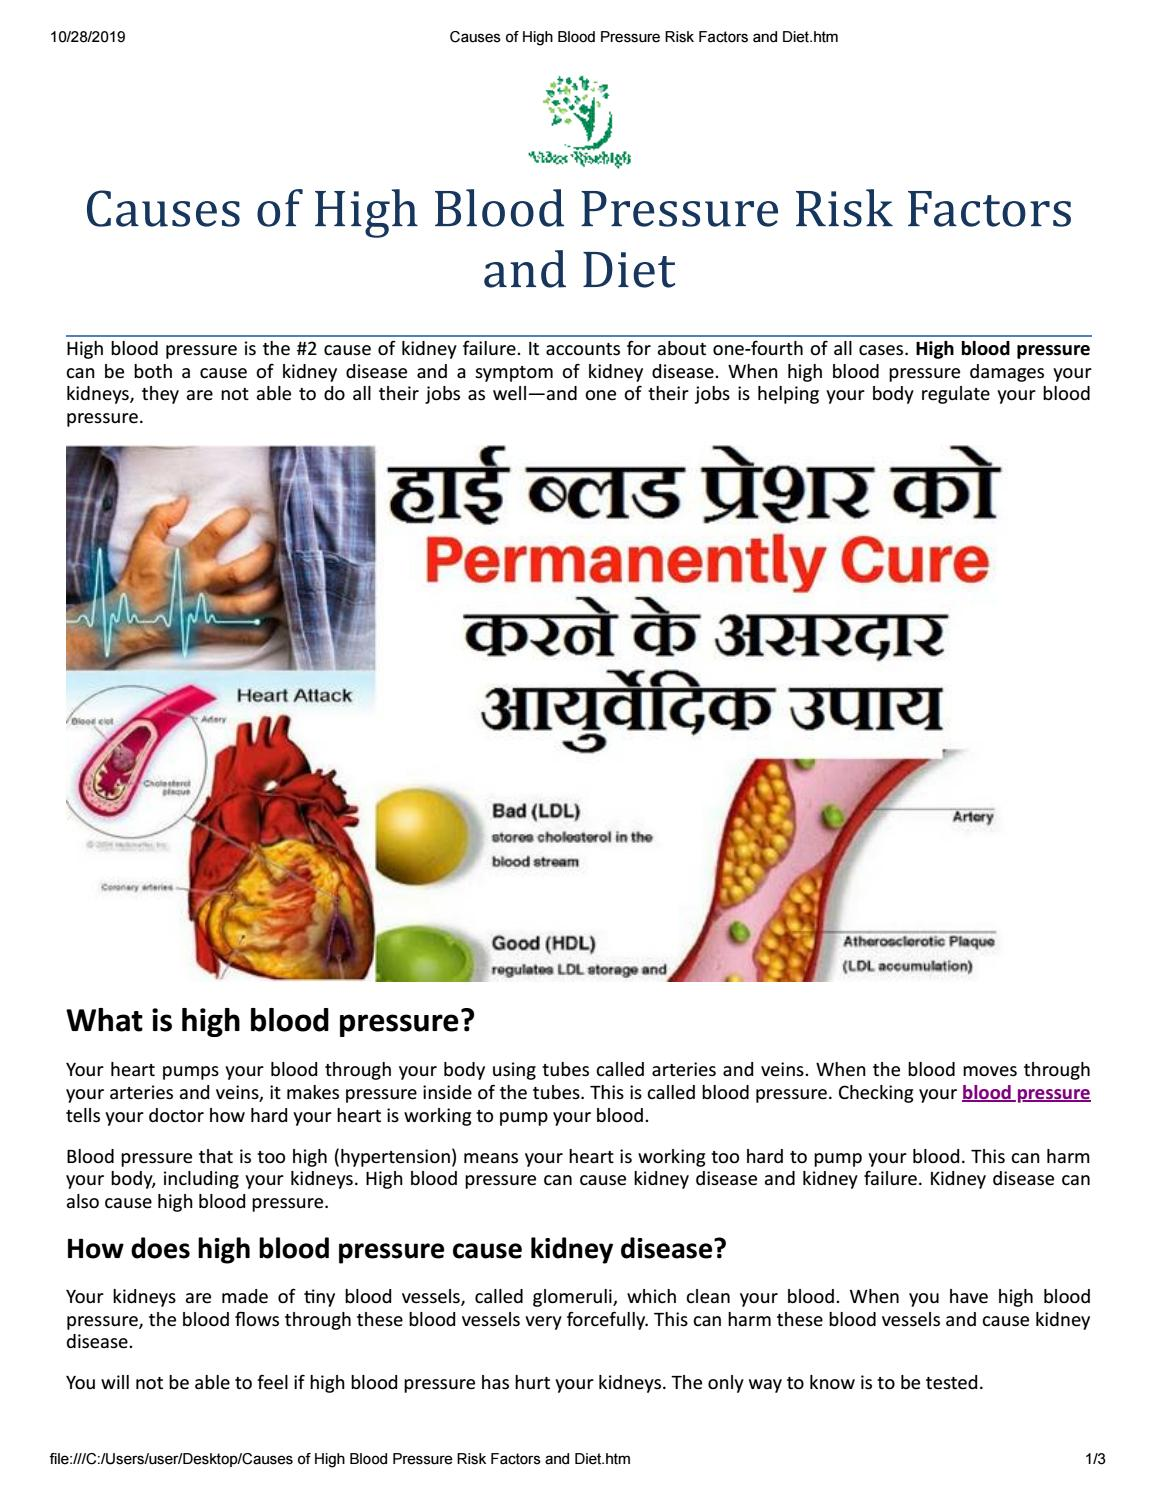 Causes Of High Blood Pressure Risk Factors And Diet By Vidza Risehigh Issuu